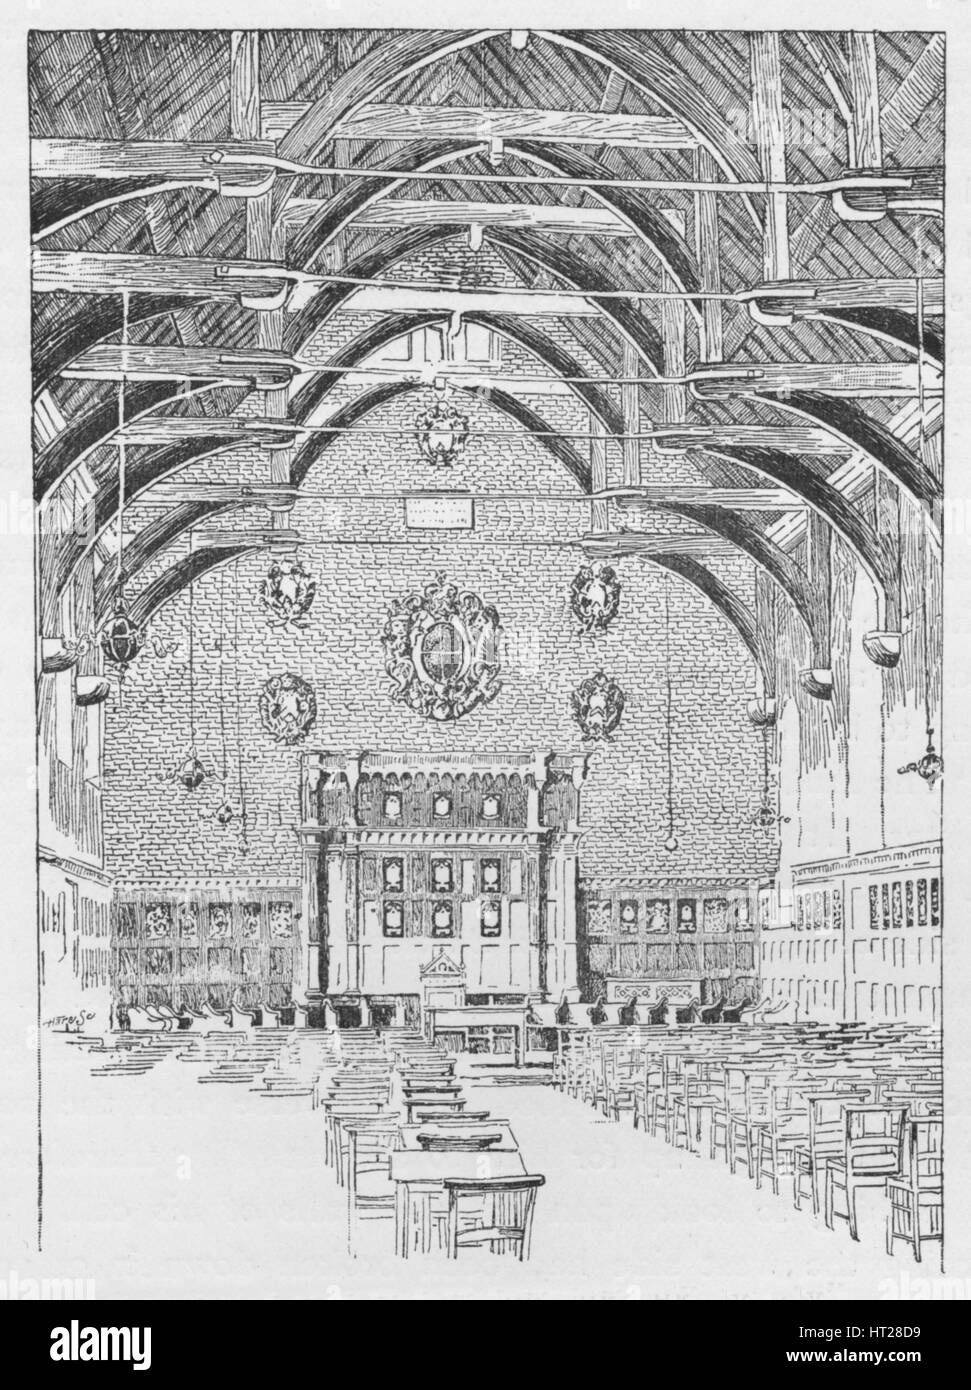 The Westminster Schoolroom, Formerly The Abbot's Dormitory', c1897. Artist: William Patten. - Stock Image